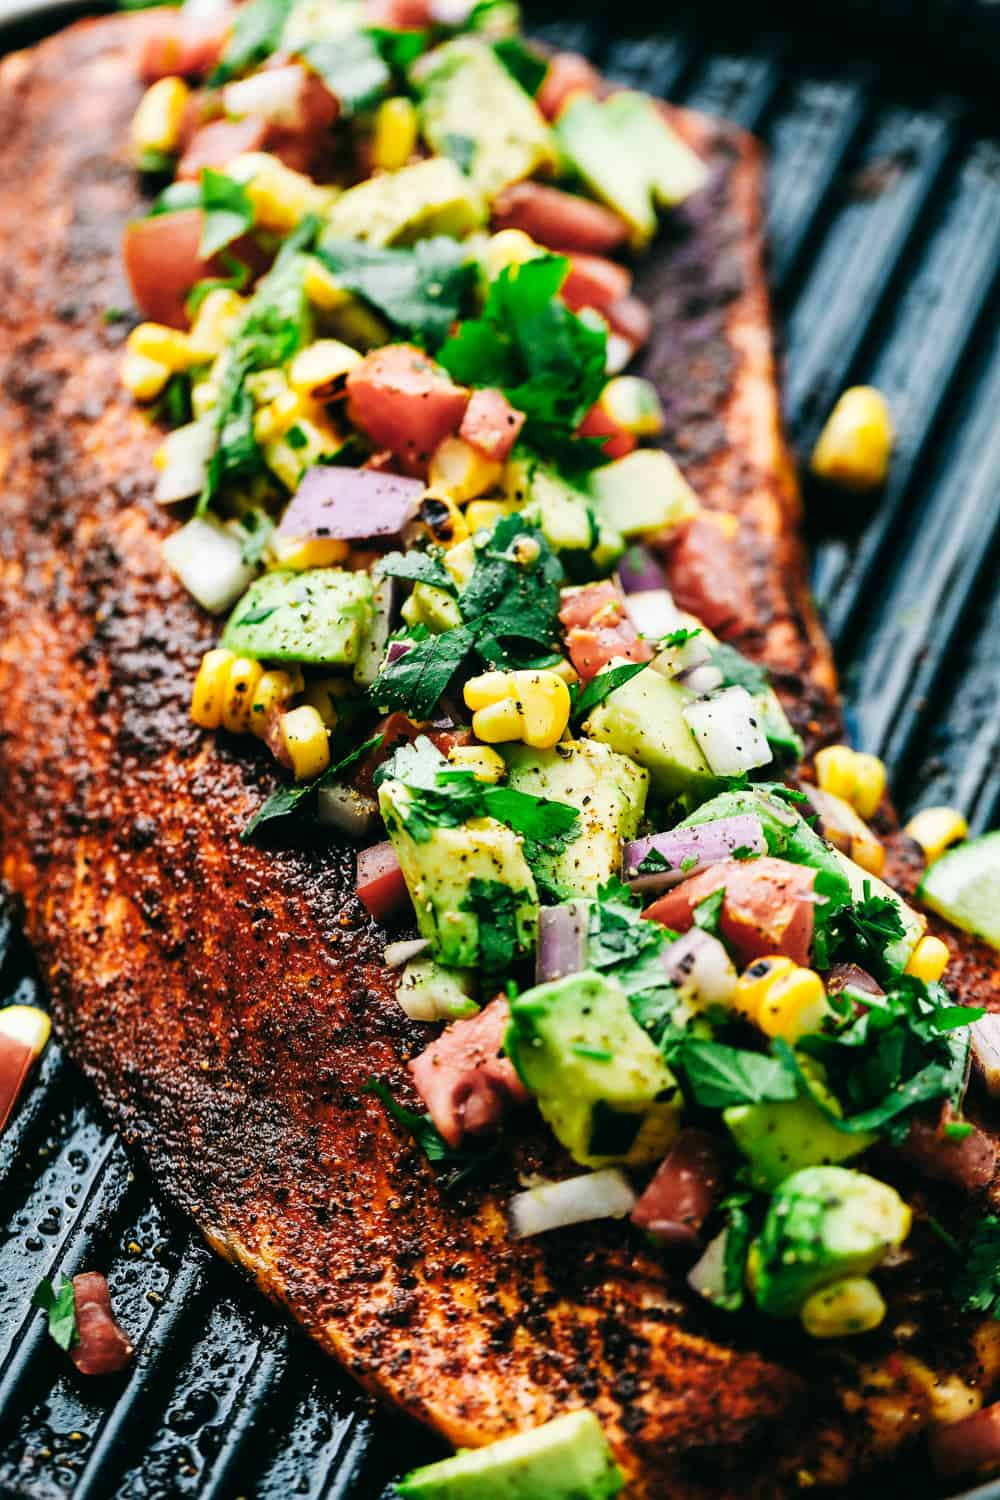 Grilled Salmon topped with Avocado Salsa